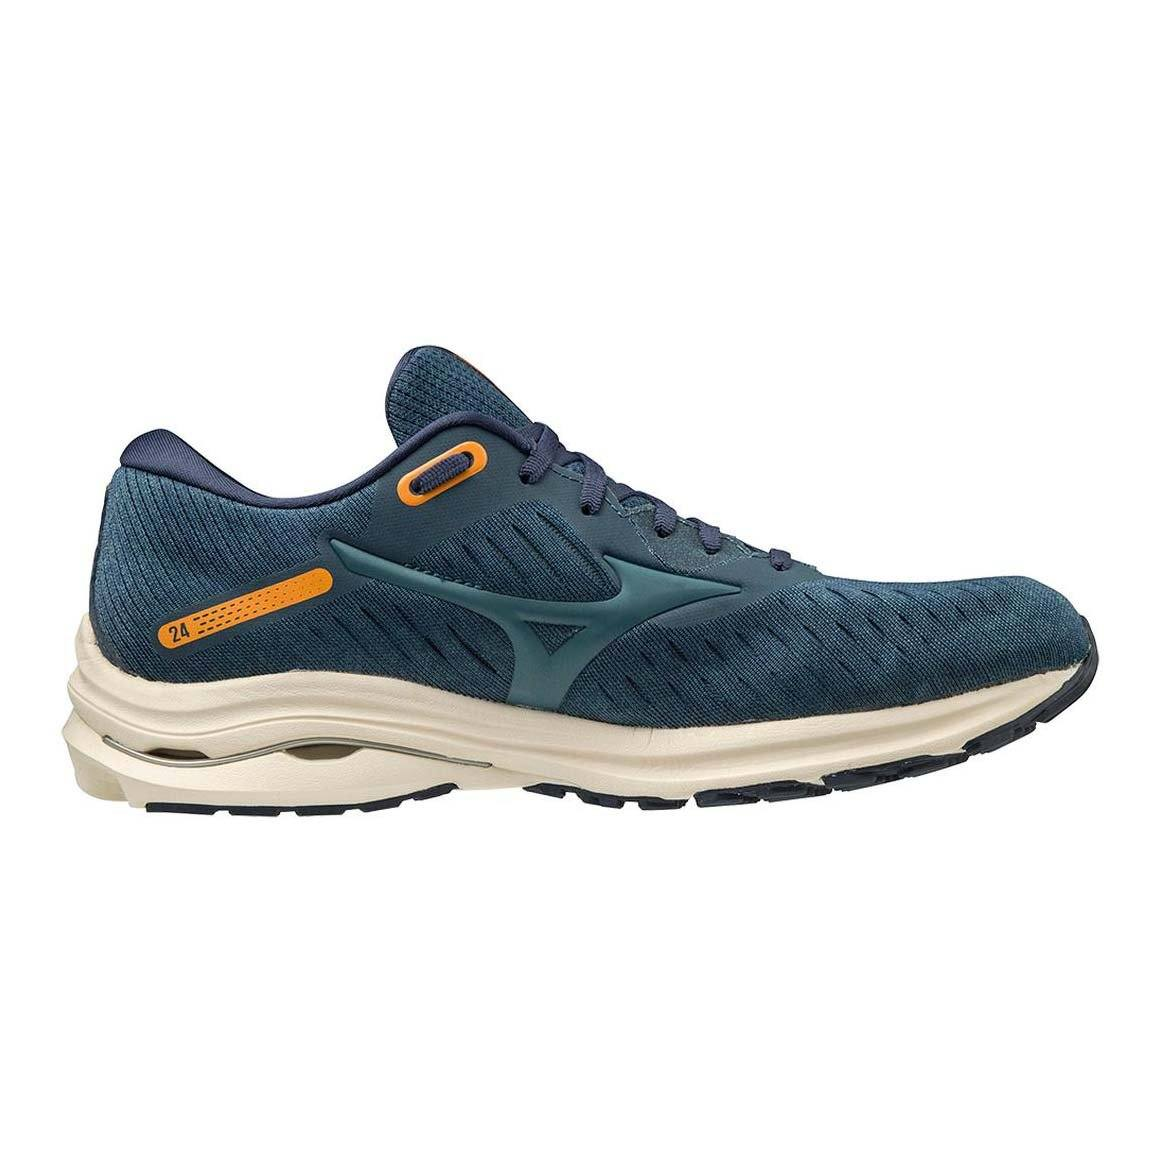 Mizuno Men's Wave Rider 24 - BlackToe Running Inc. - Toronto Running Specialty Store